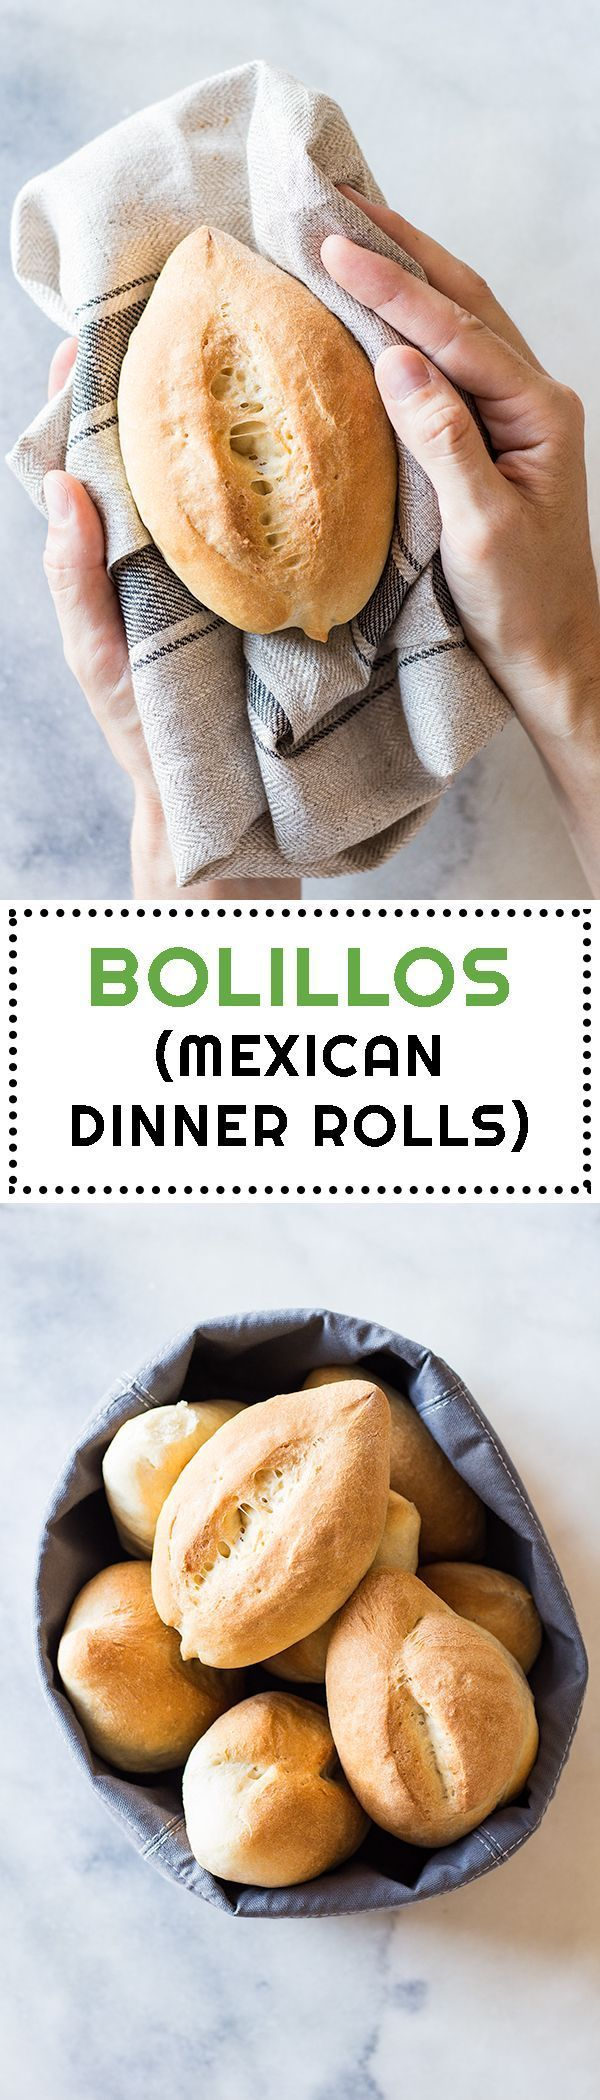 Mexican Dinner Rolls or Bolillos are the number 1 sold bread in Mexico City. They are probably every Mexican's second favorite carbohydrate after tortillas.